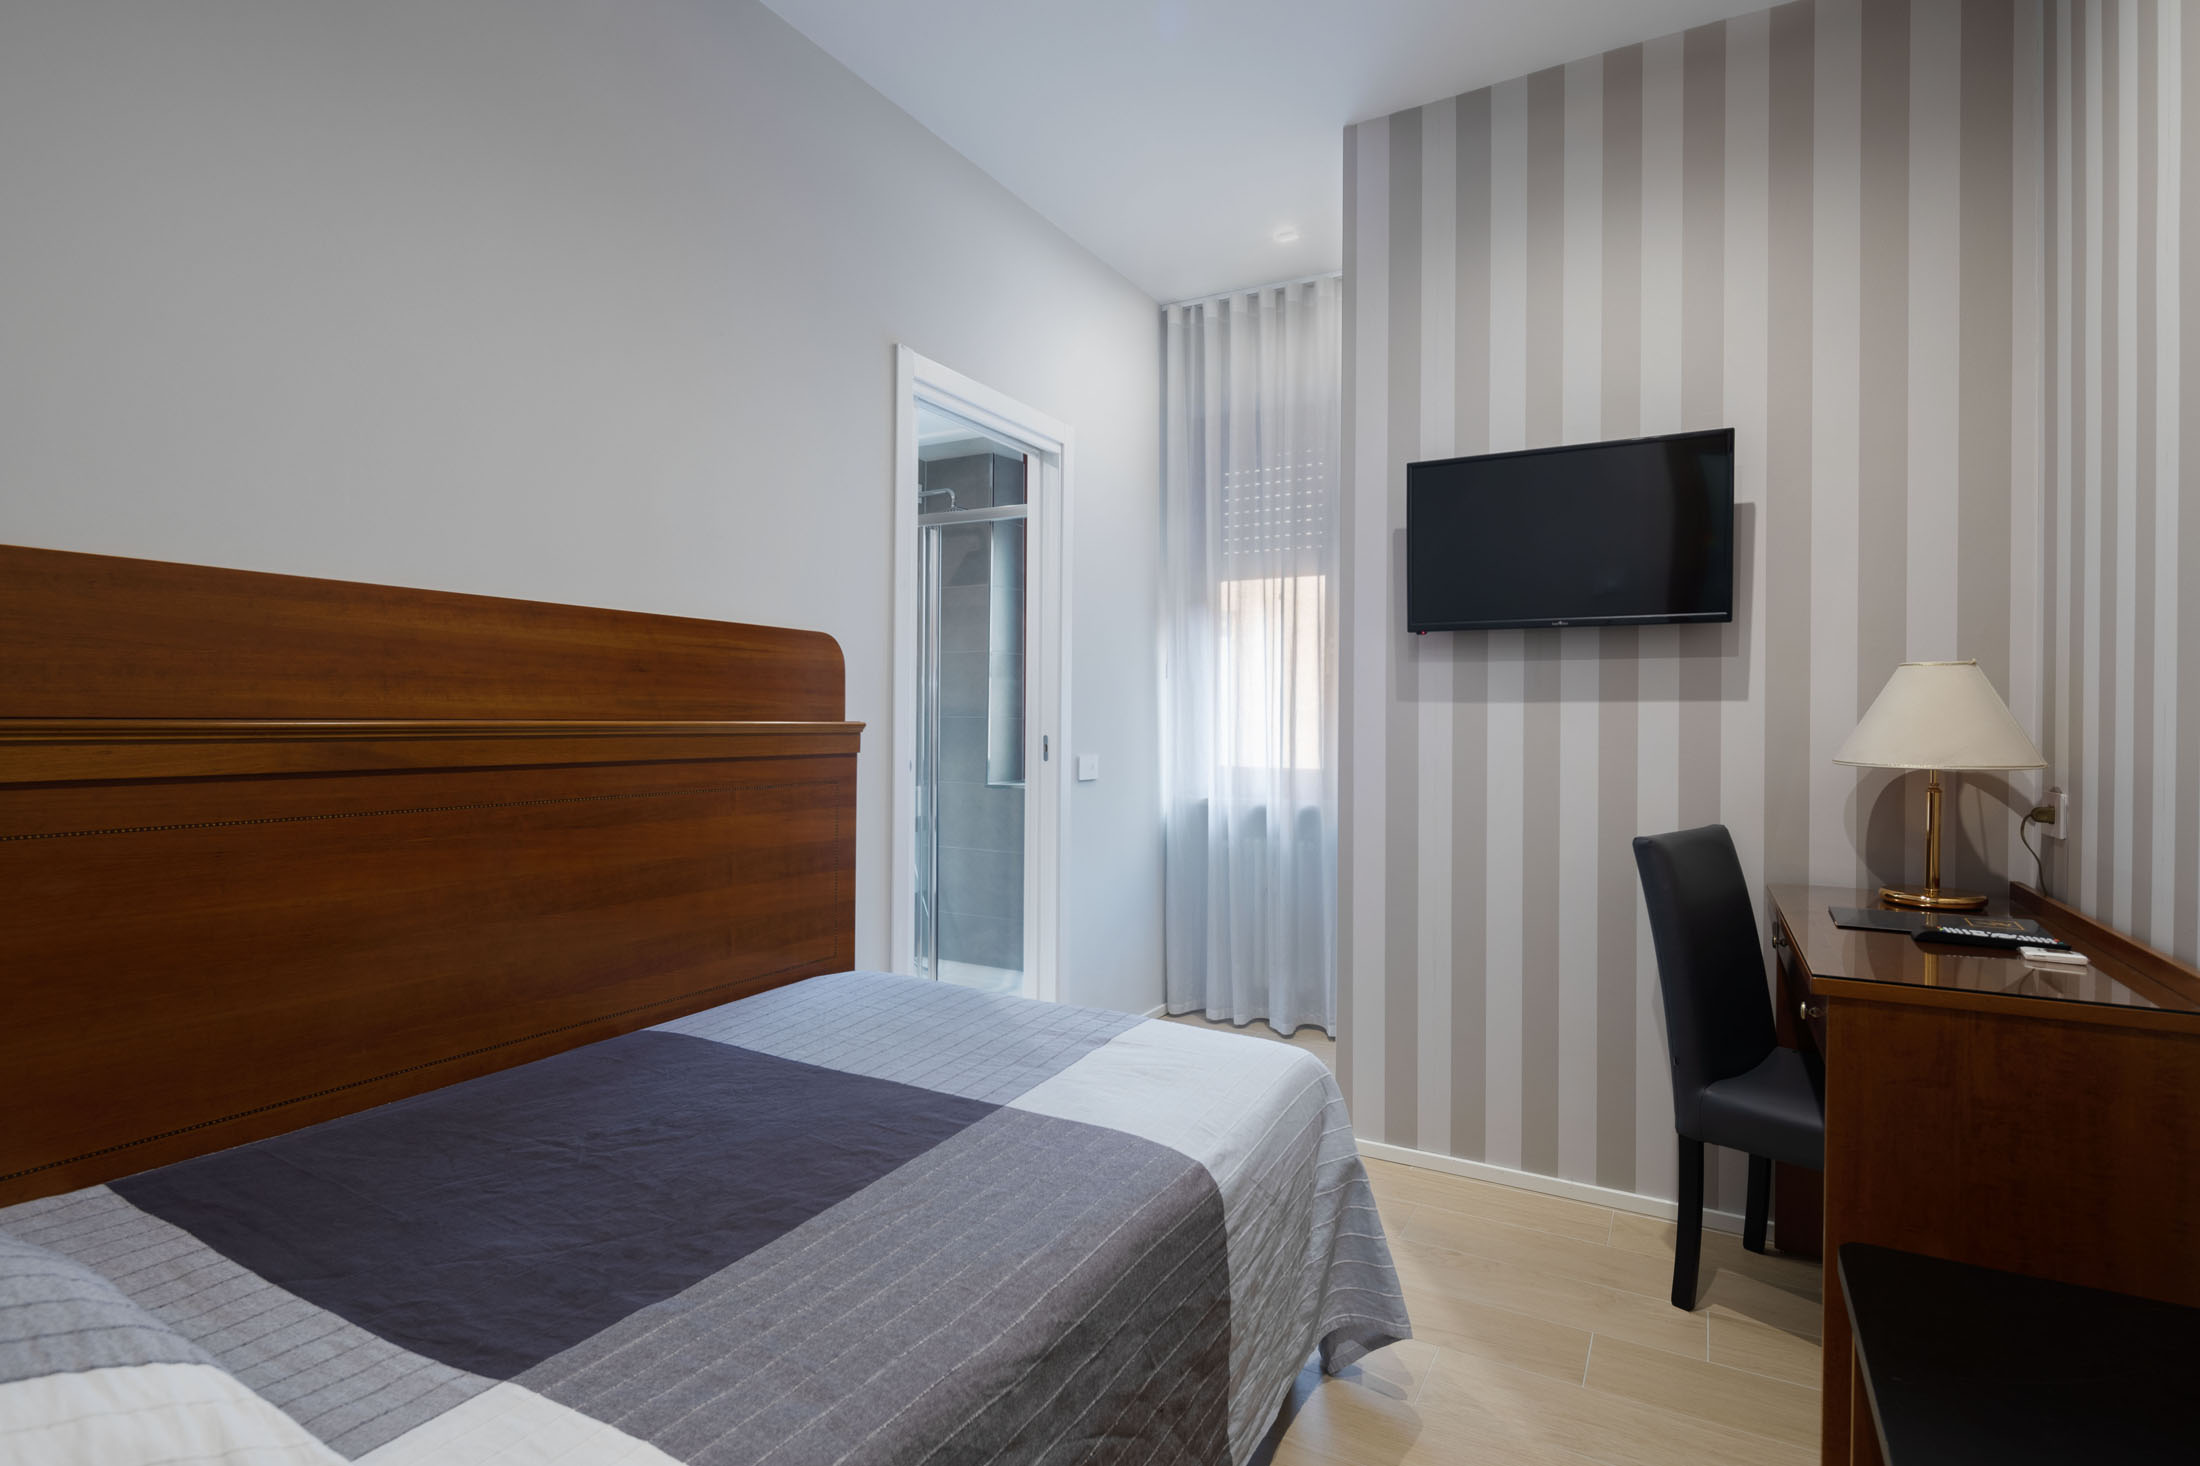 https://www.in-lombardia.it/sites/default/files/accomodation/gallery/105682/37628/excelsior_pavia_15.jpg